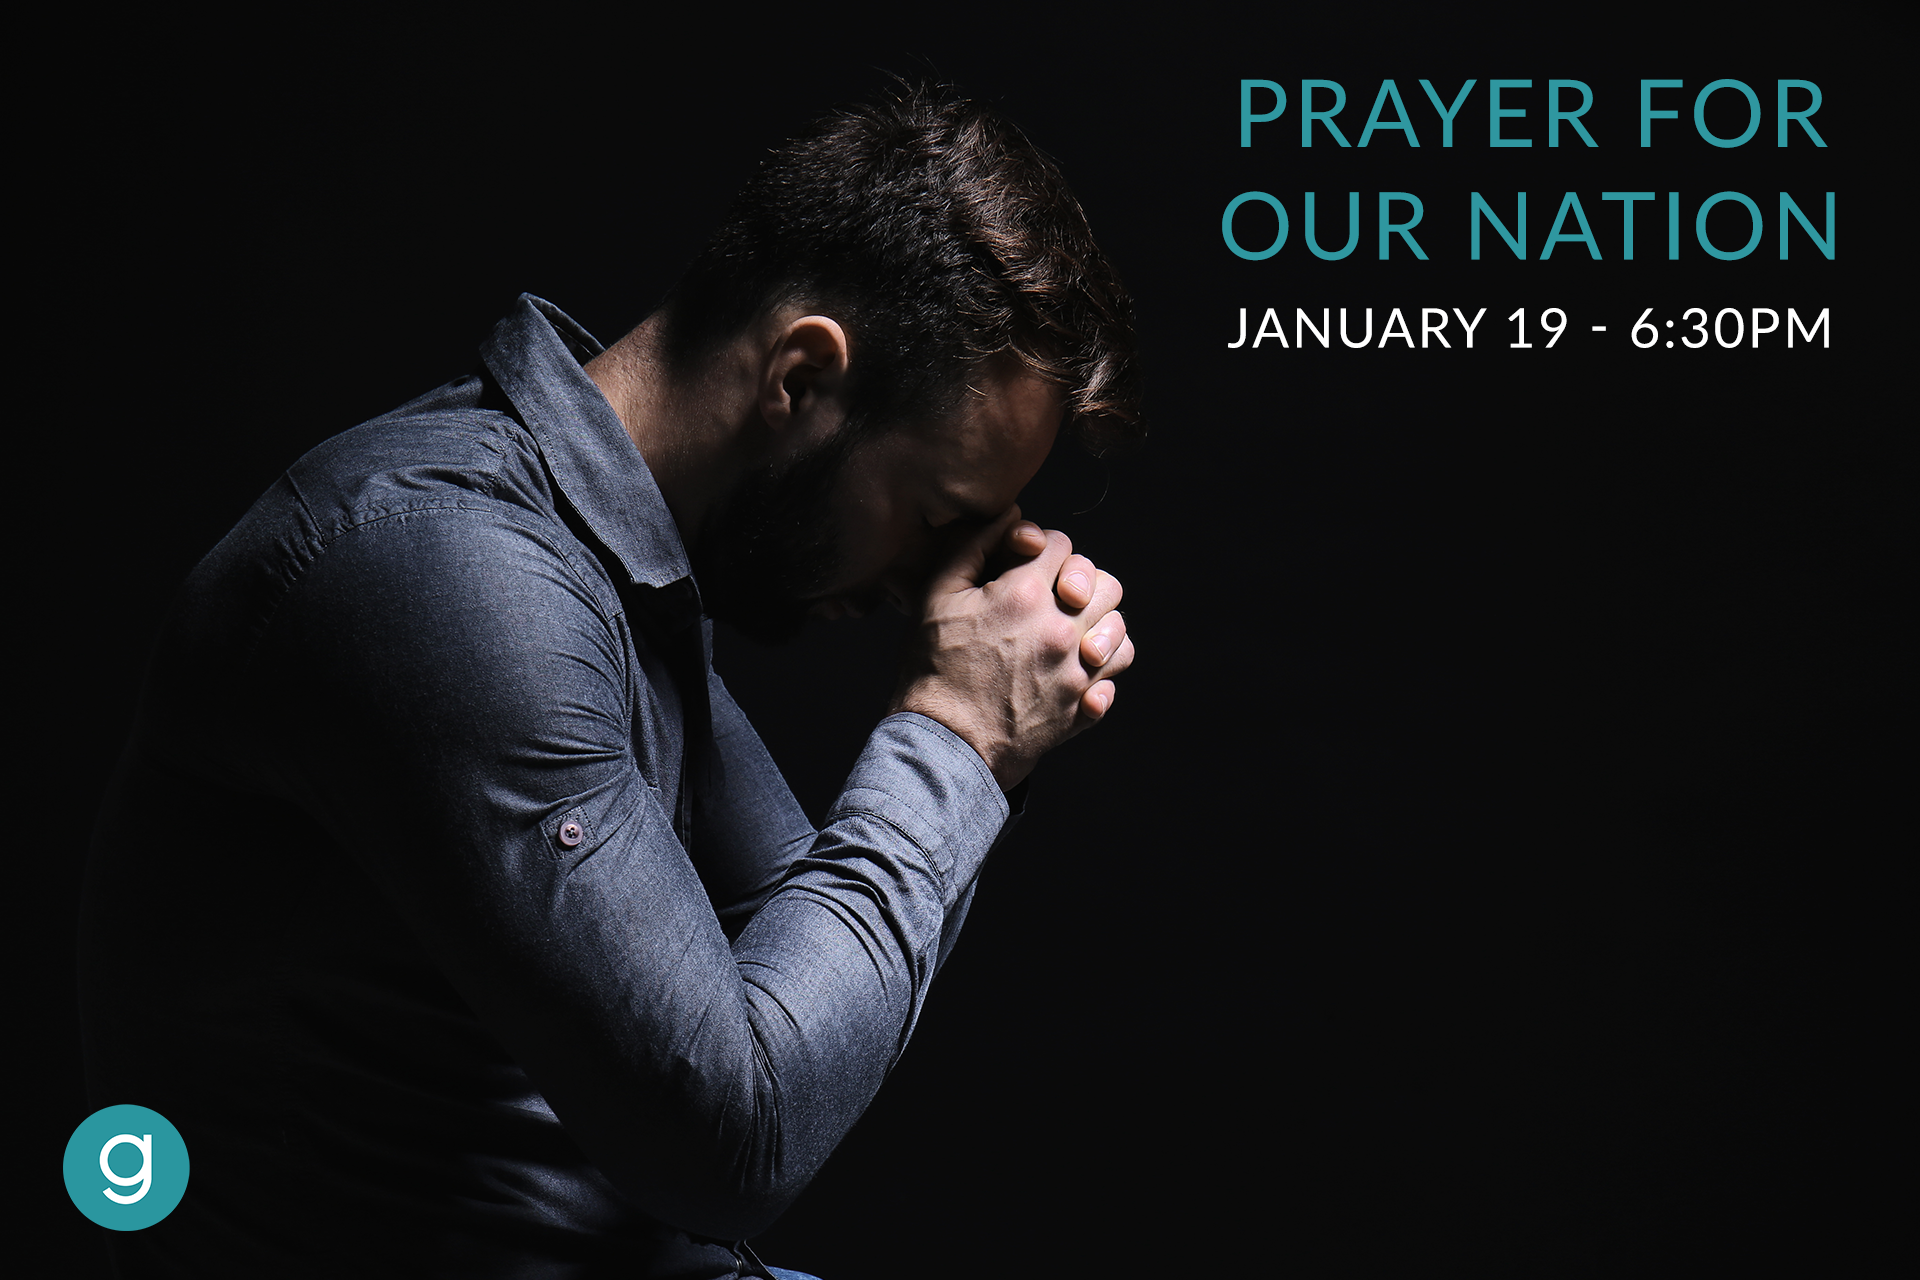 Link to Prayer for Our Nation detail page